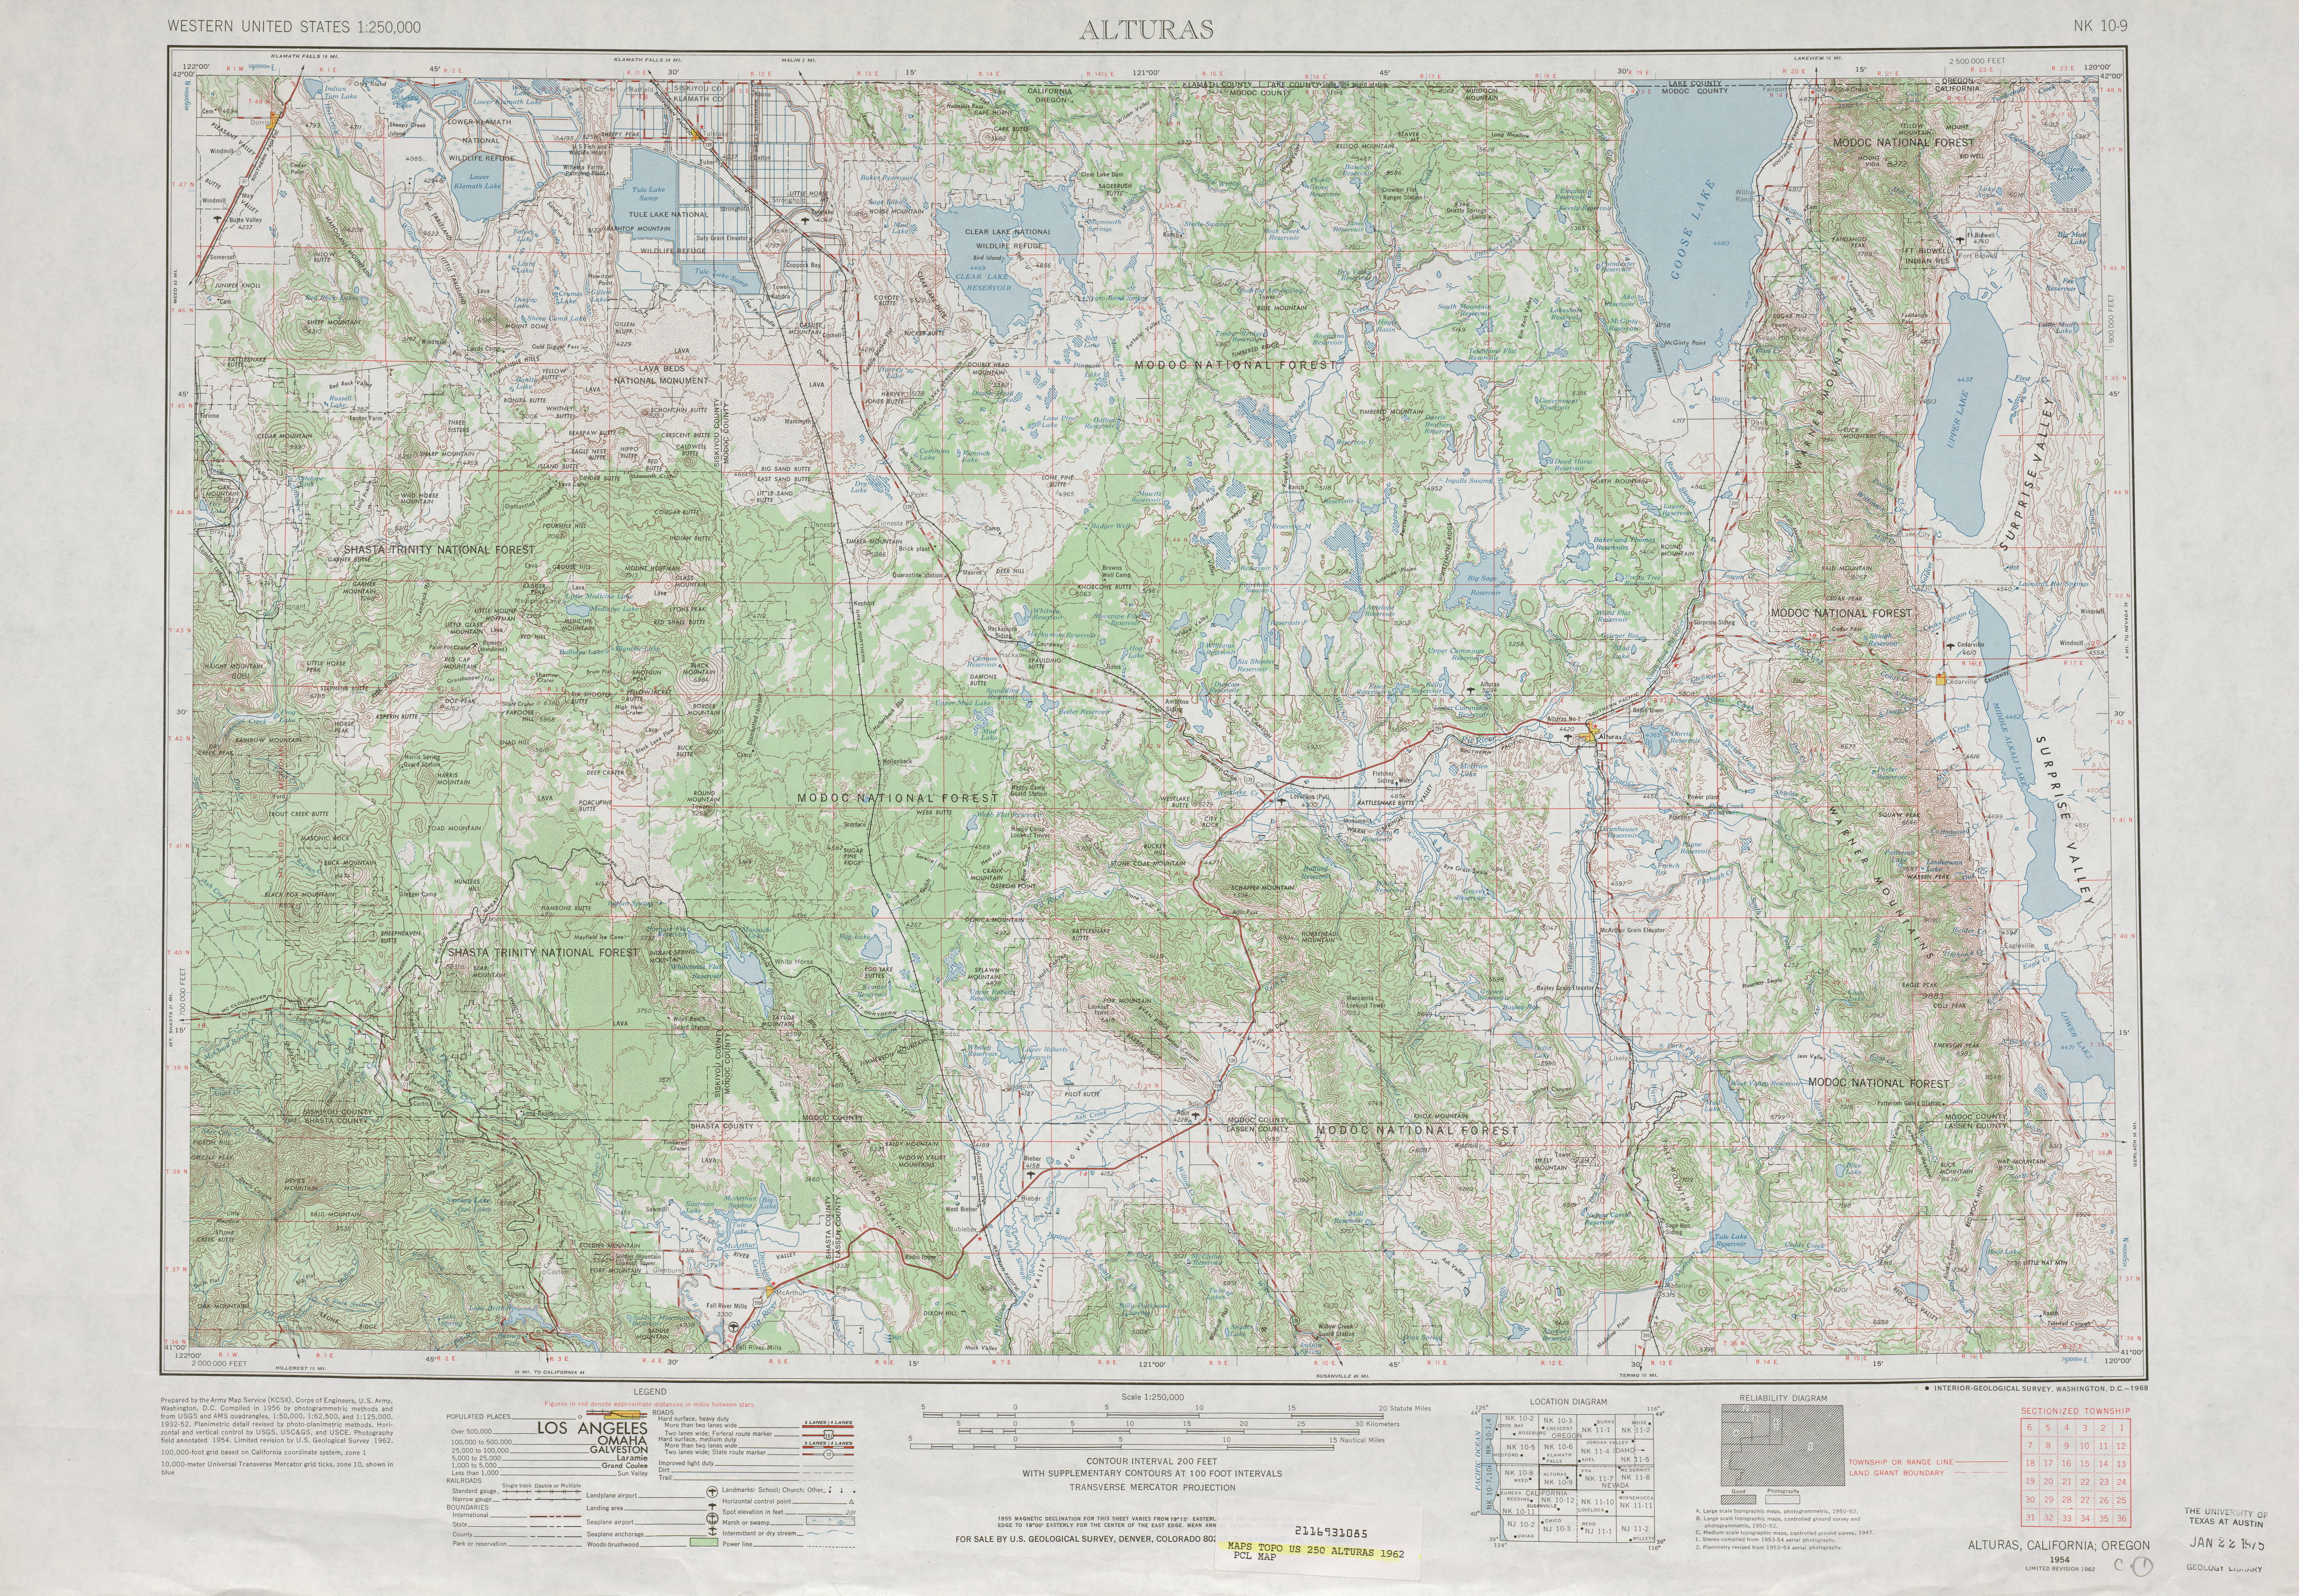 Alturas Topographic Map Sheet, United States 1962